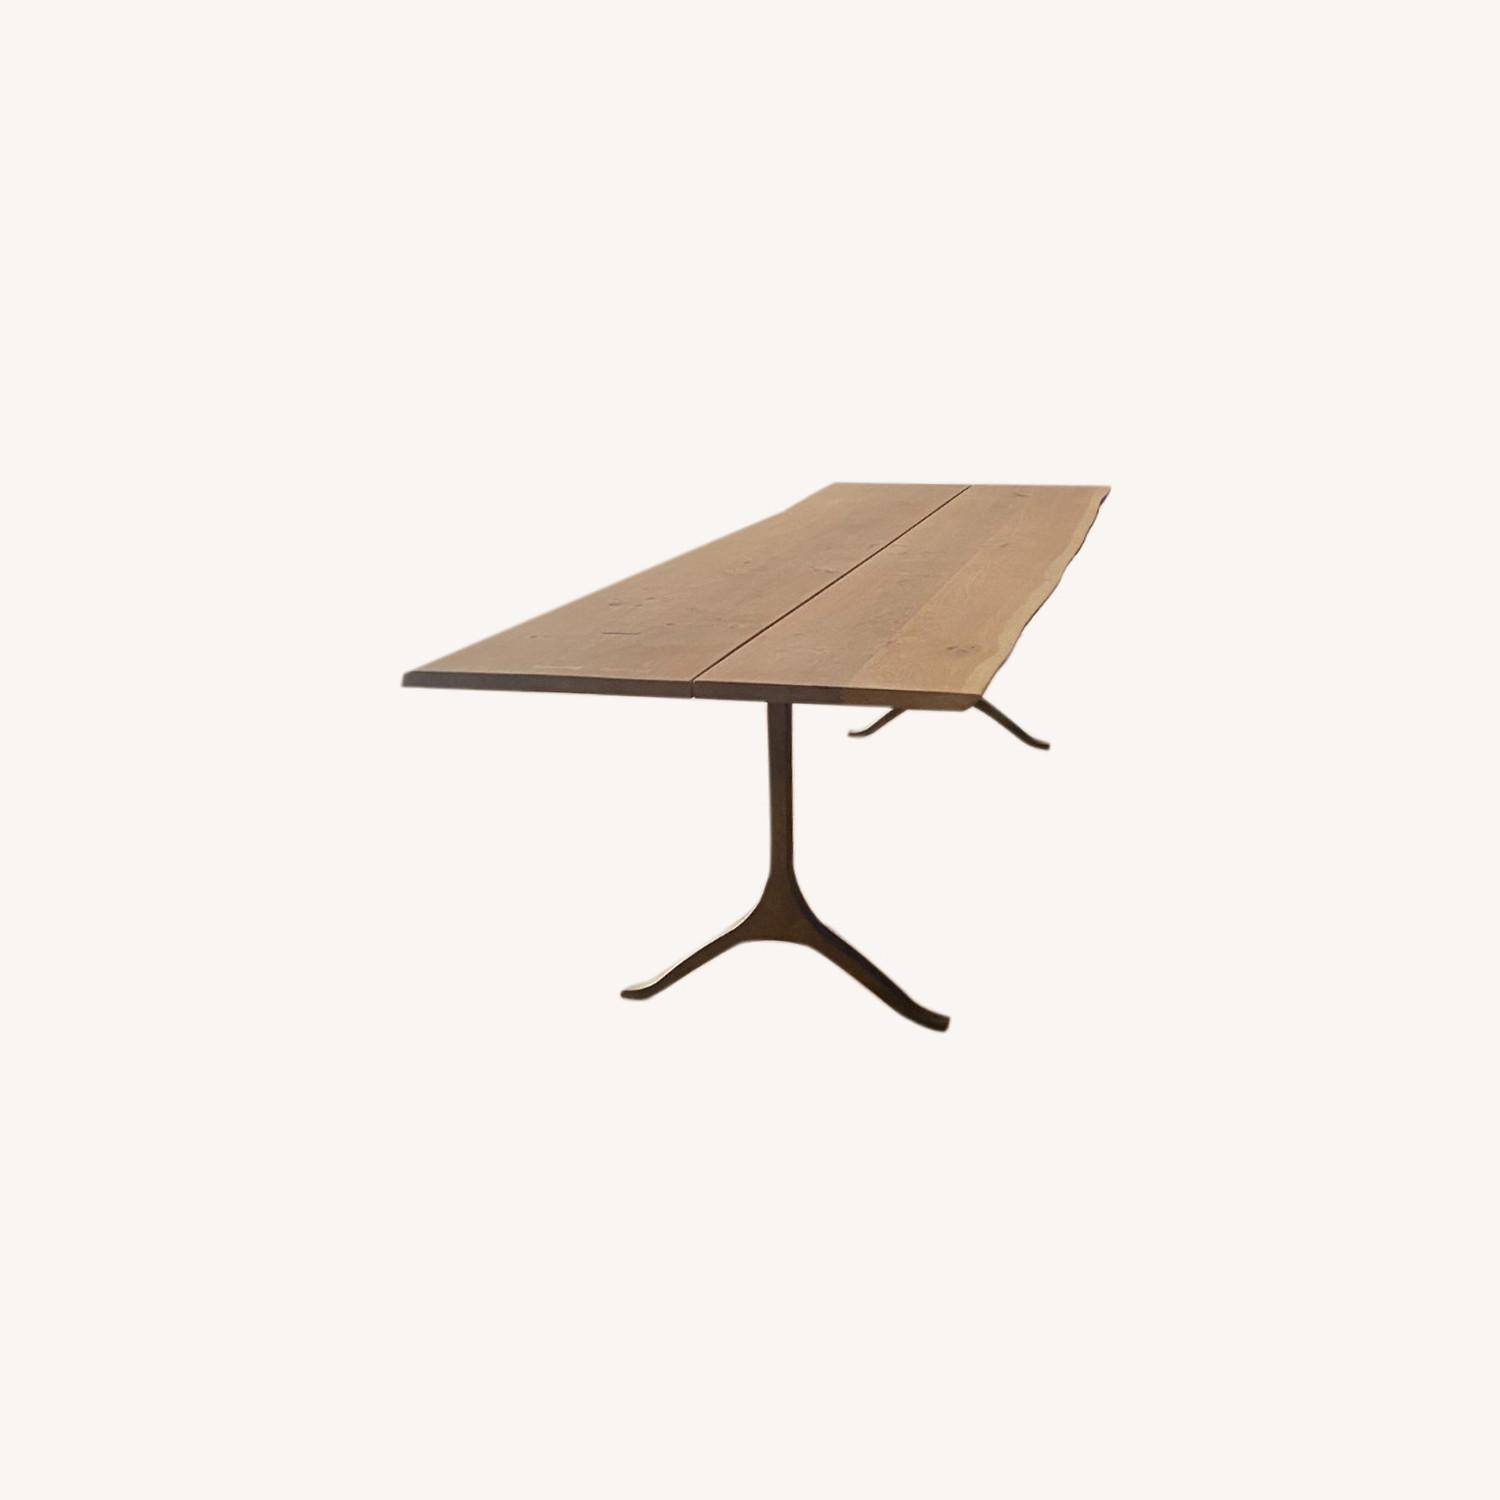 Anthropologie Oak and Brass Live Edge Dining Table - image-0